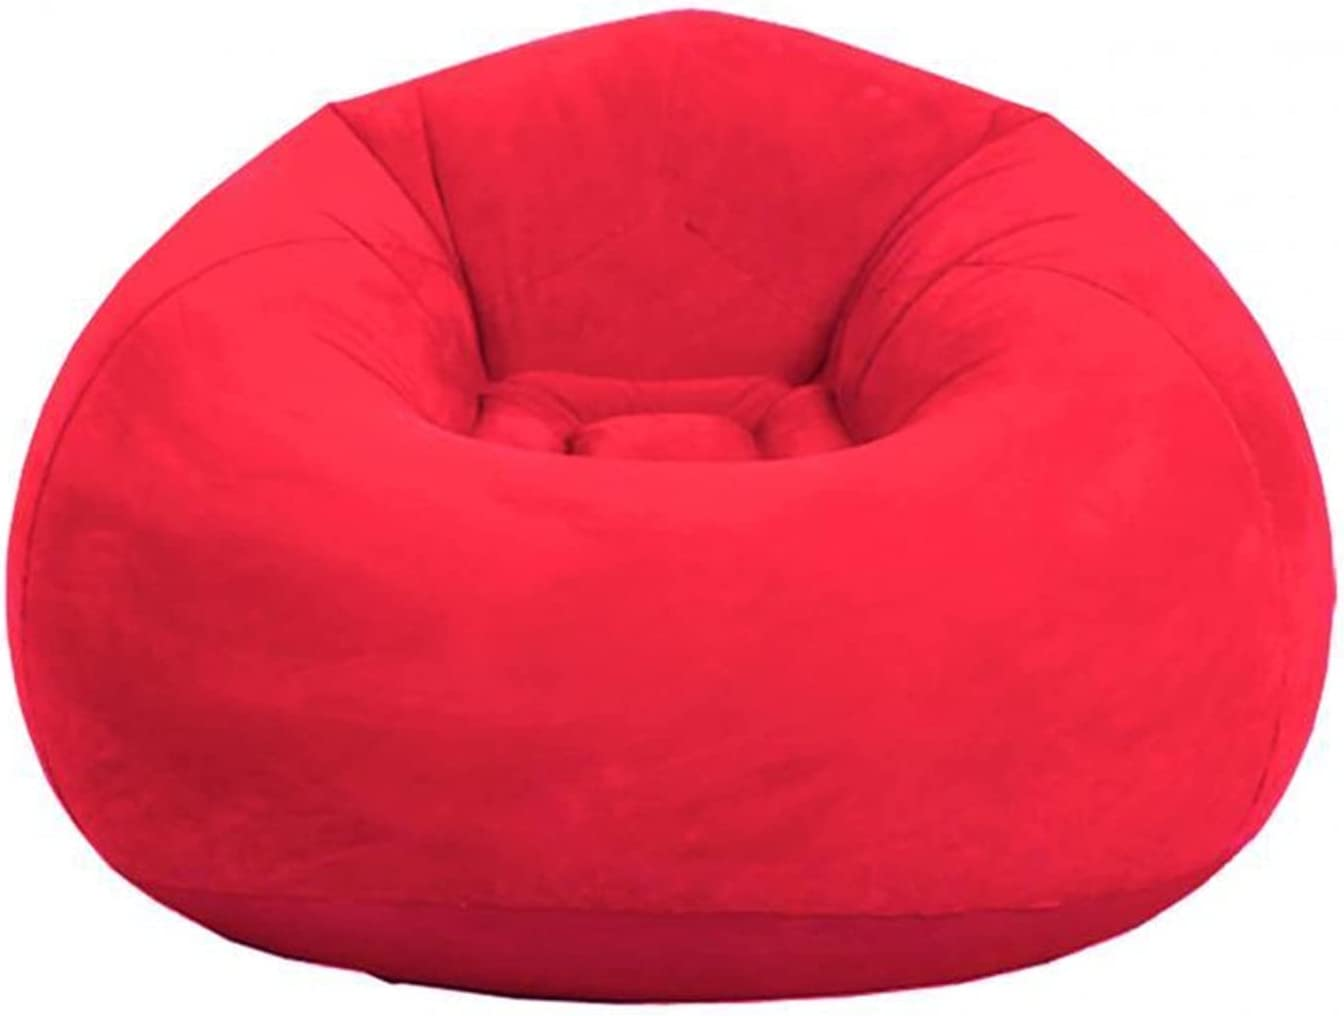 ppqq Suitable for Home Lazy Daily bargain sale Max 59% OFF Indoor Bag Bean Chair